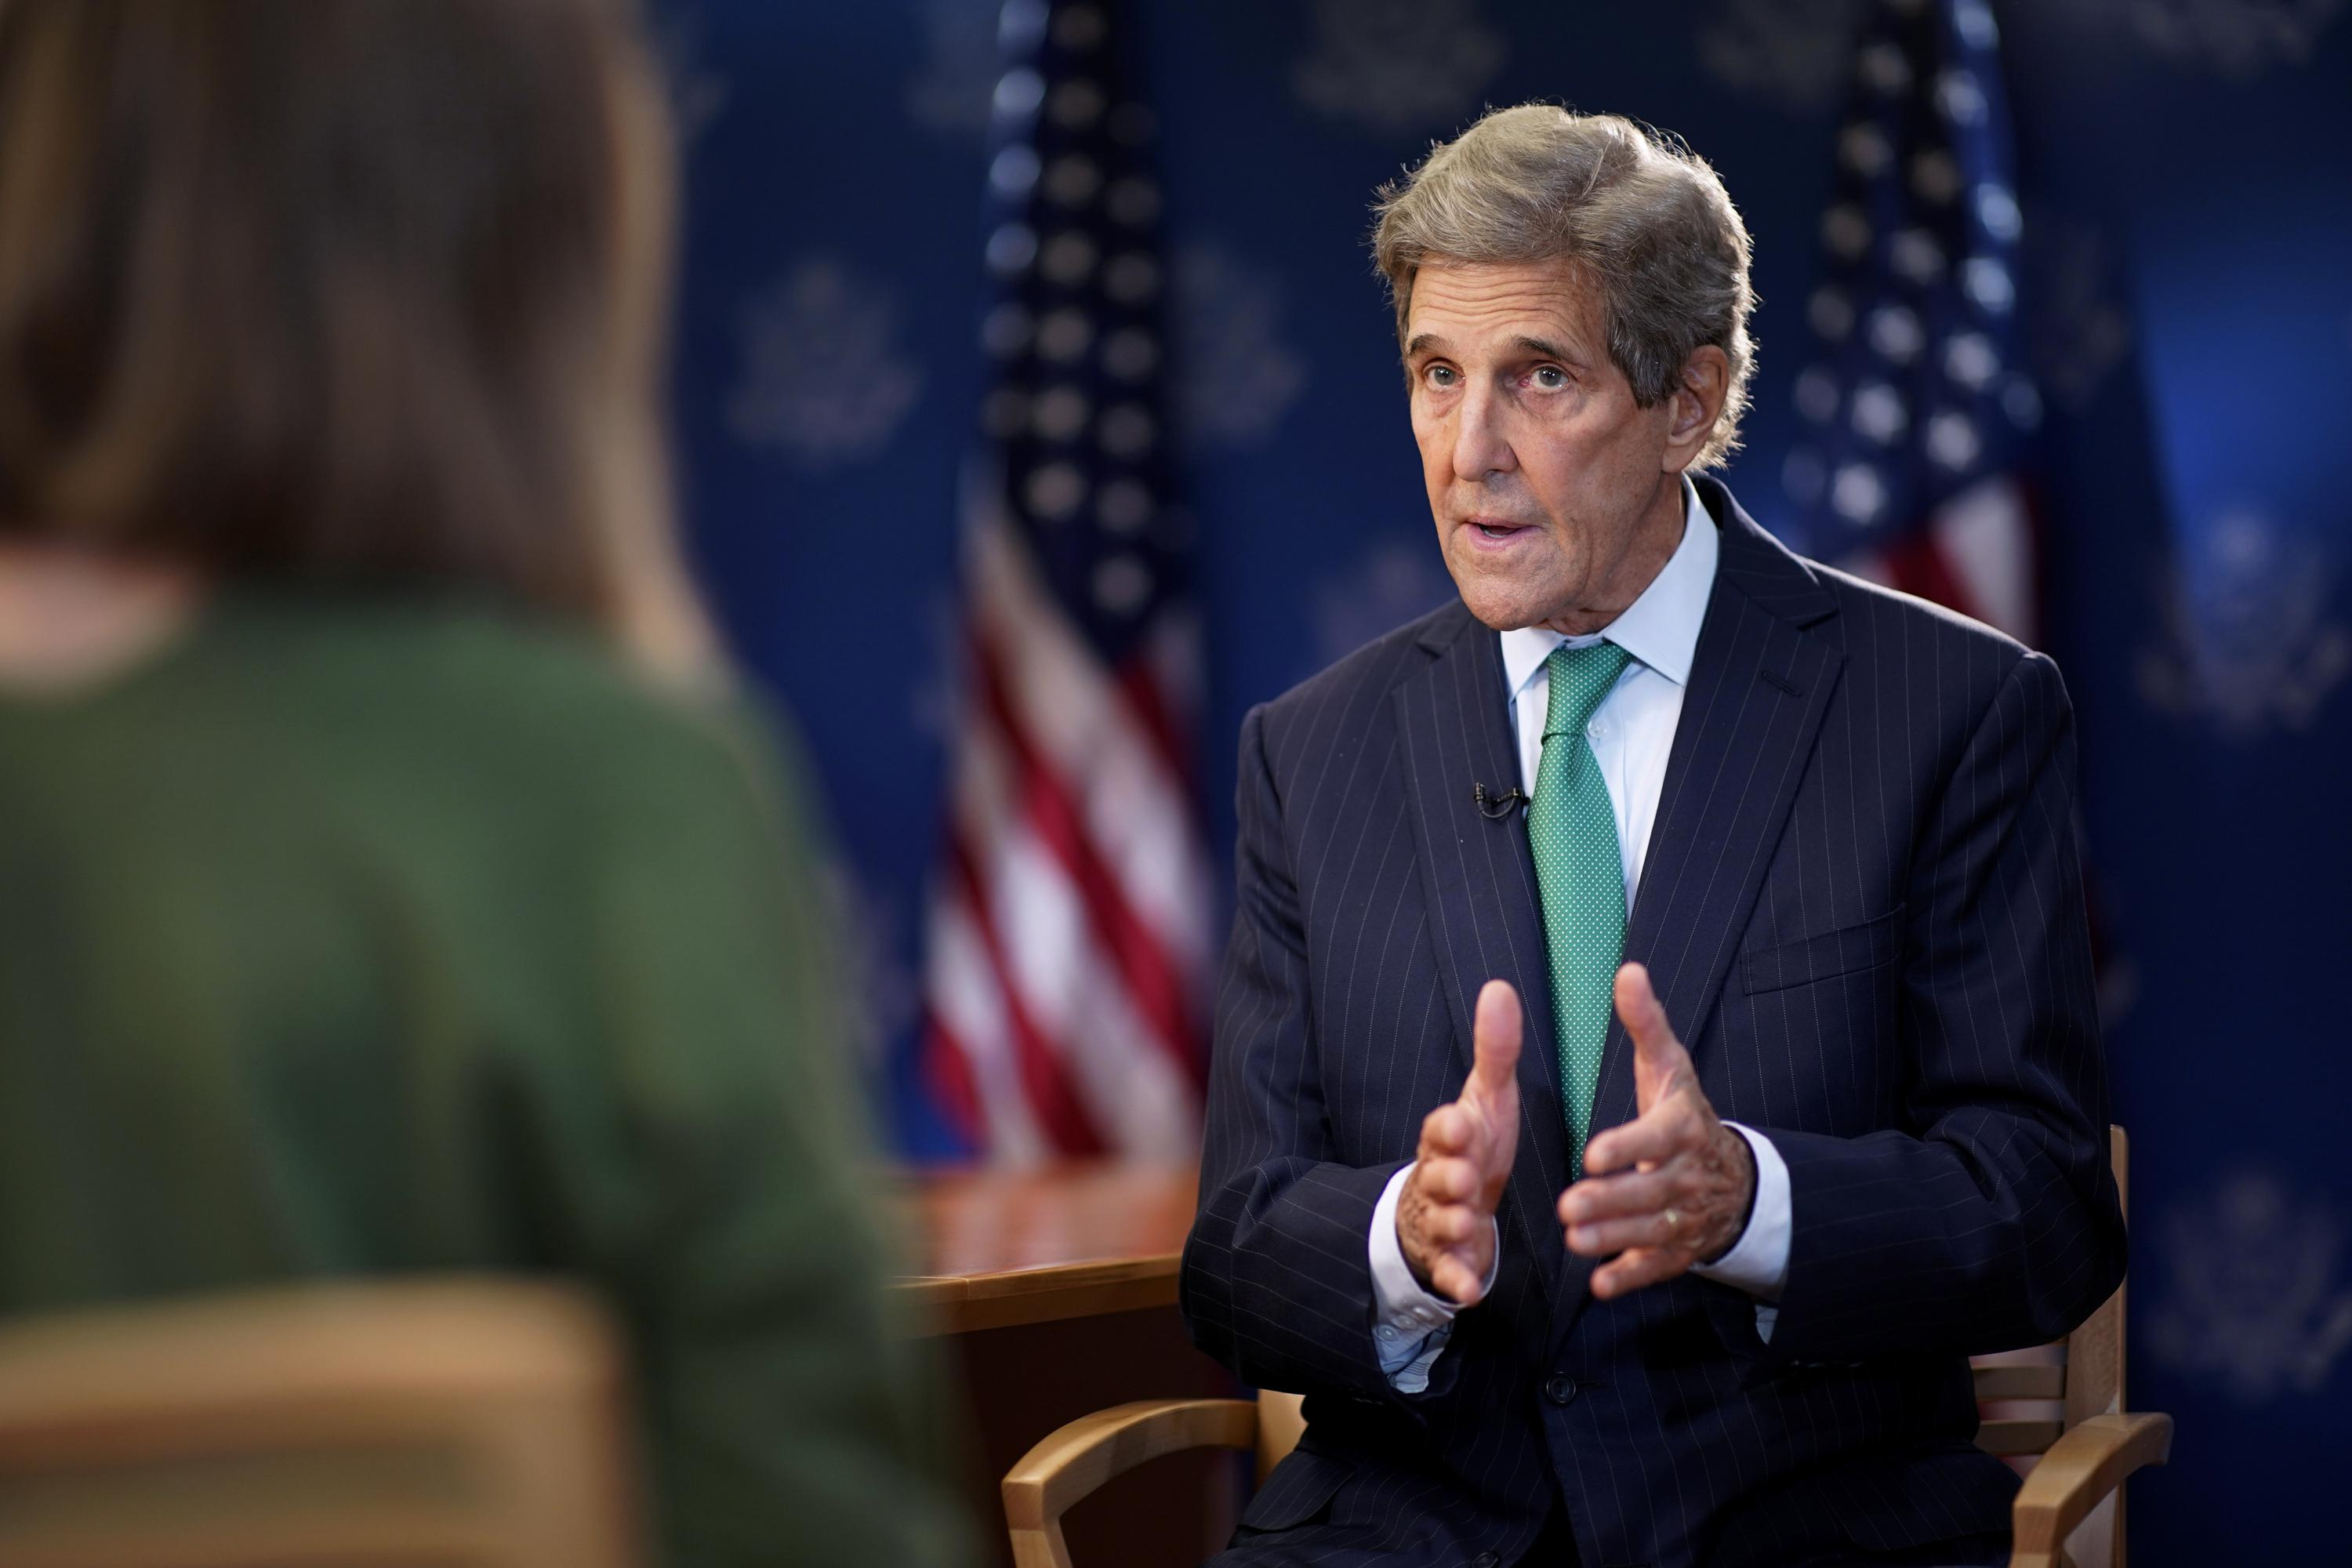 The AP Interview: Kerry says climate talks may miss target - Associated Press